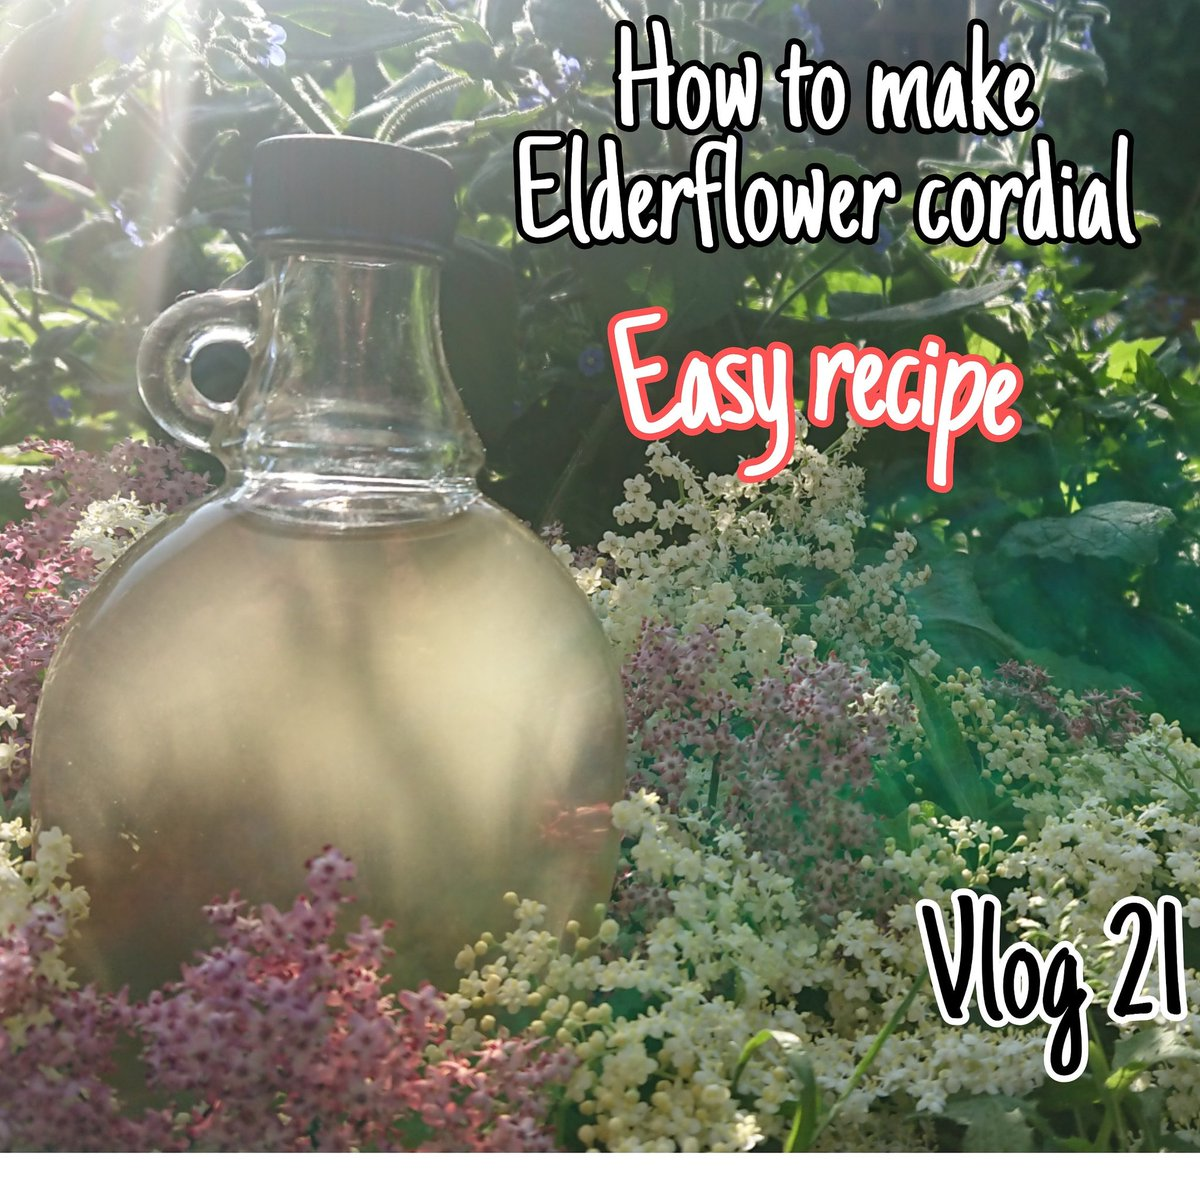 We made elderflower cordial with the kids its beautiful to drink & energising  Here's the recipe   https://youtu.be/eNN08Y_MNK0  #Nature #naturephotography #naturelovers #NatureLover #natureza #Naturegram #natureporn #natureaddict #naturephoto #natureshots #naturelove #natureonly pic.twitter.com/EnjmzU343U  by Home Is where Our heart Is